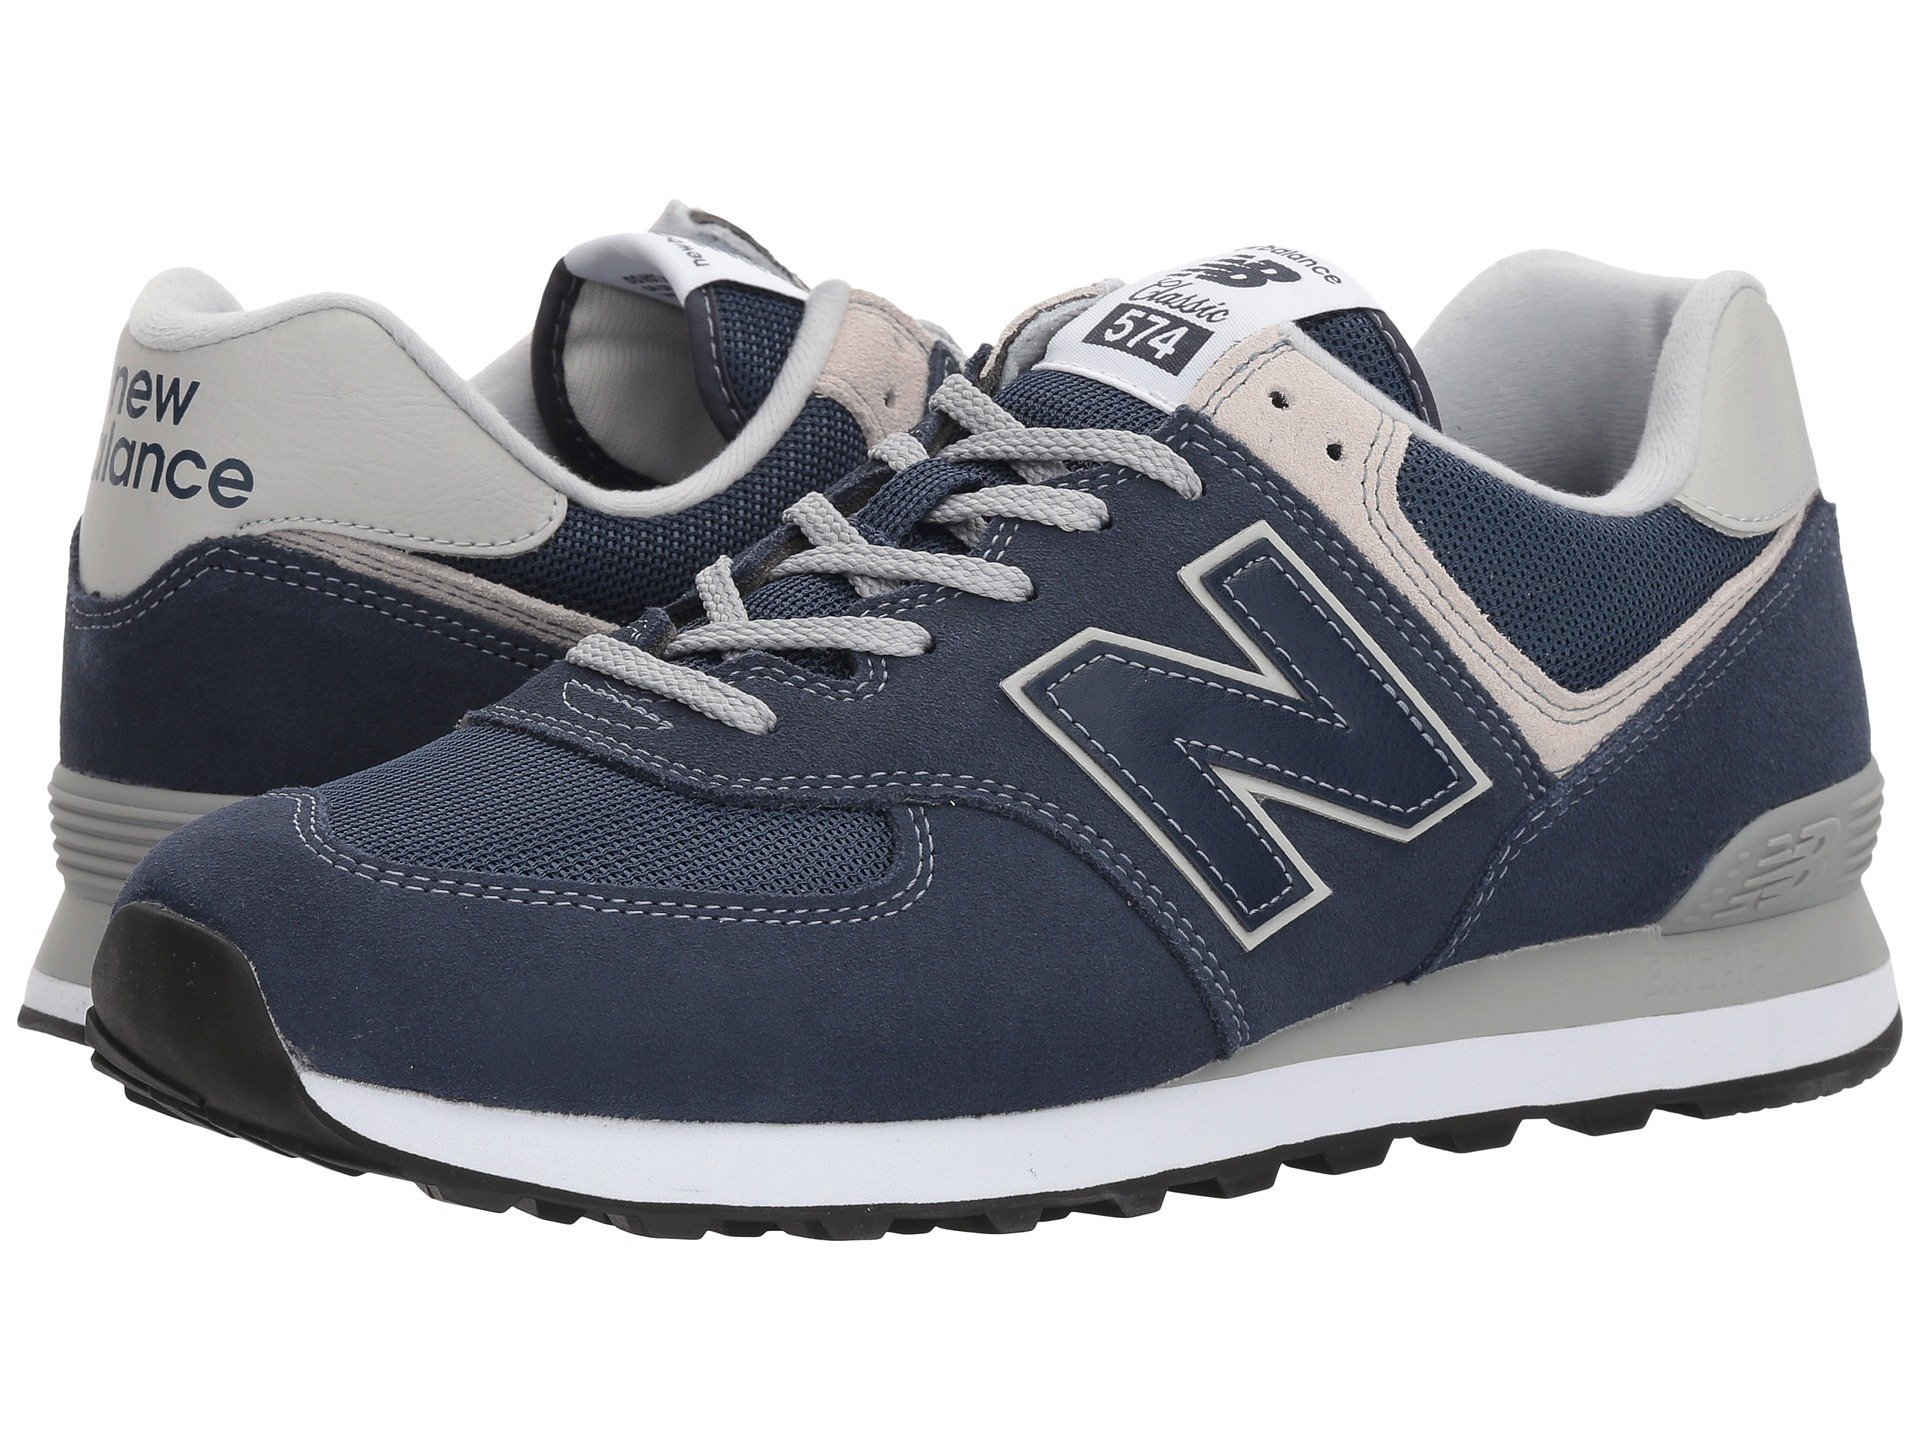 Discount 180642 New Balance Classics Ml515 Men Grey Blue Red Shoes